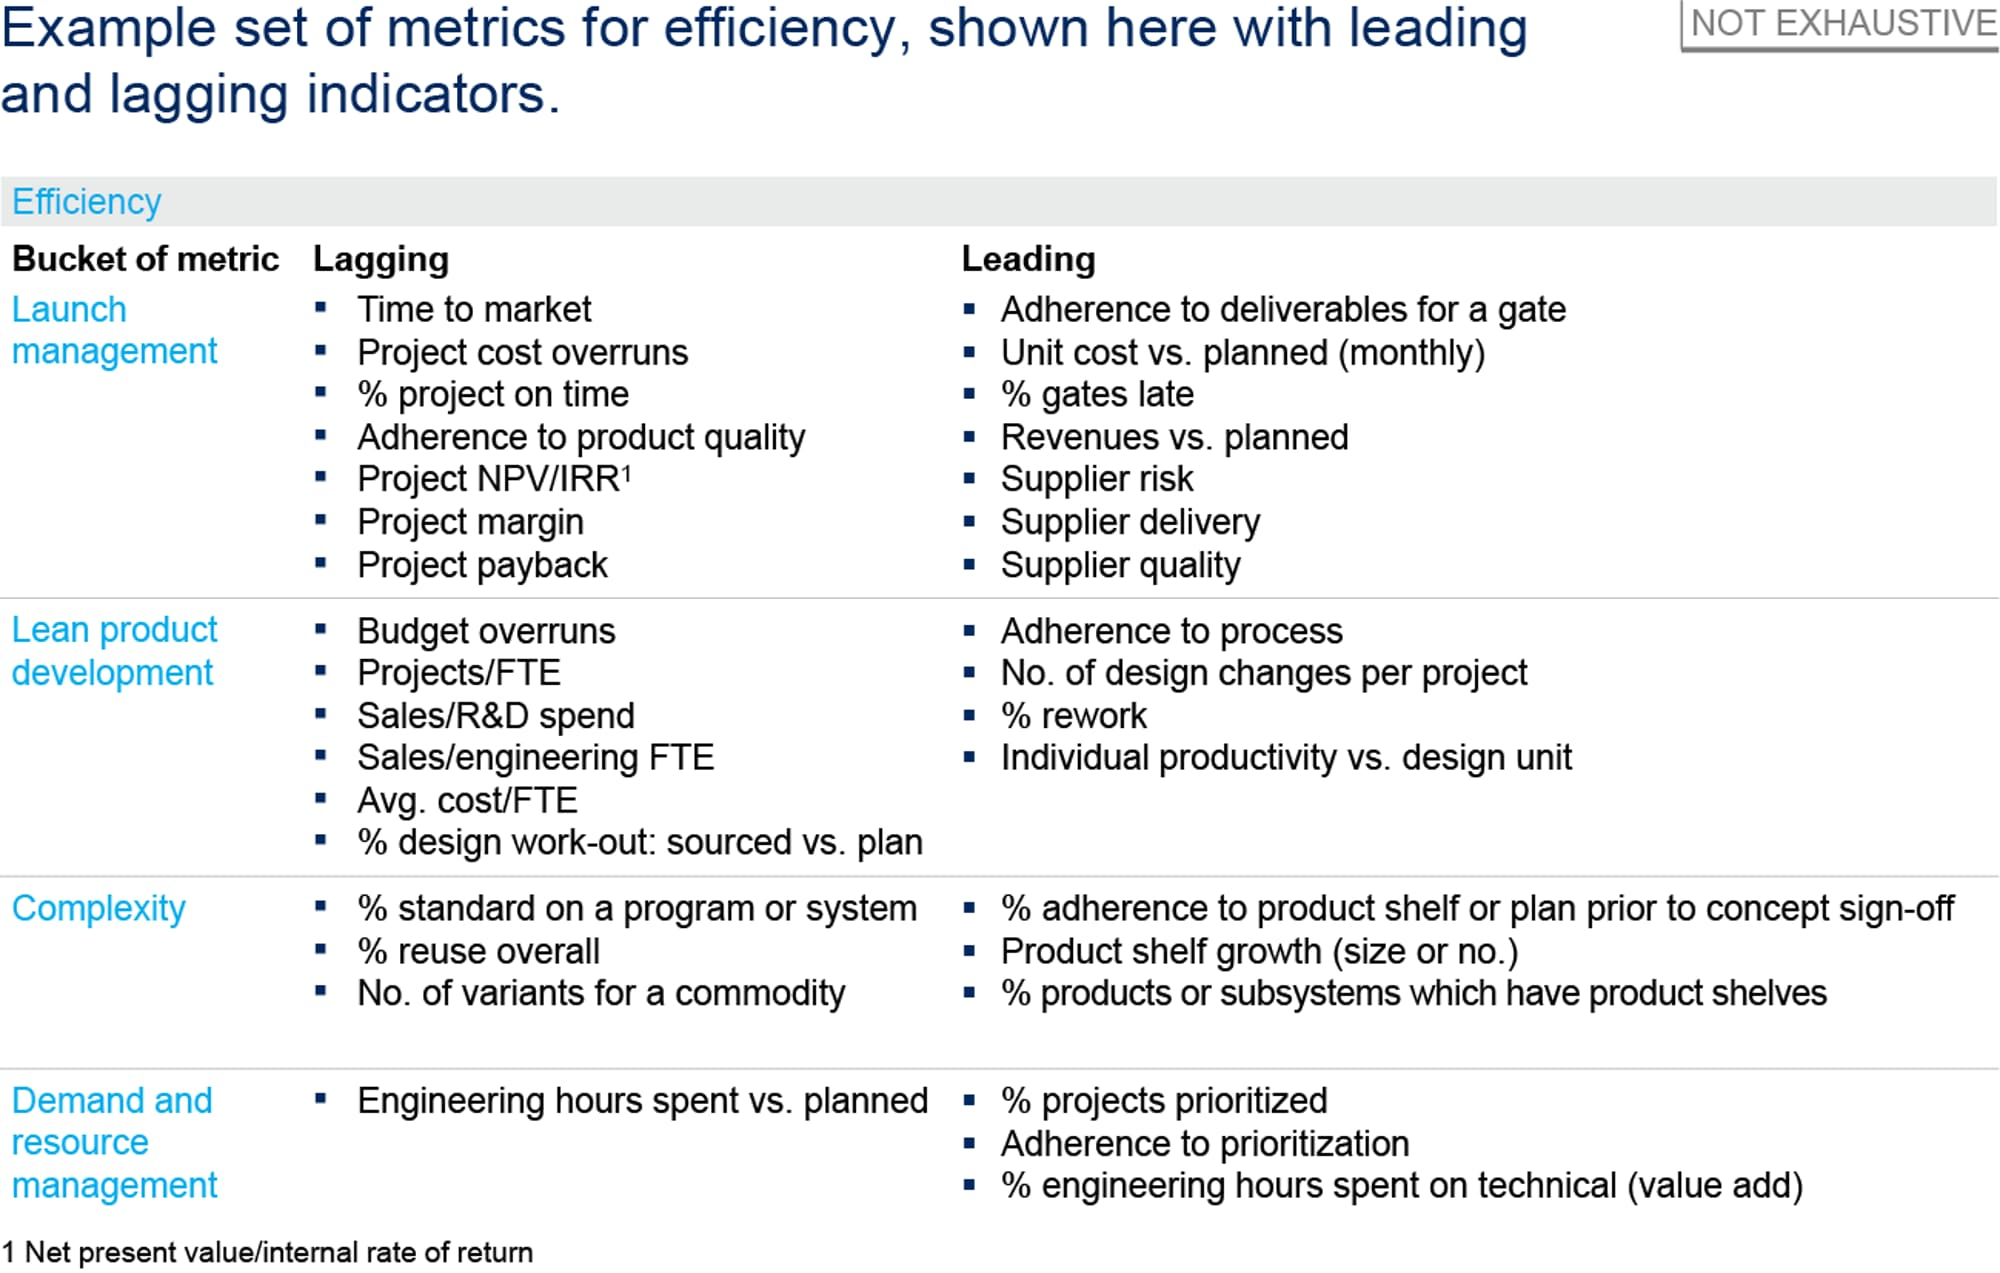 Gauging Internal Efficiency And Effectiveness With Leading And Lagging Indicators Mckinsey